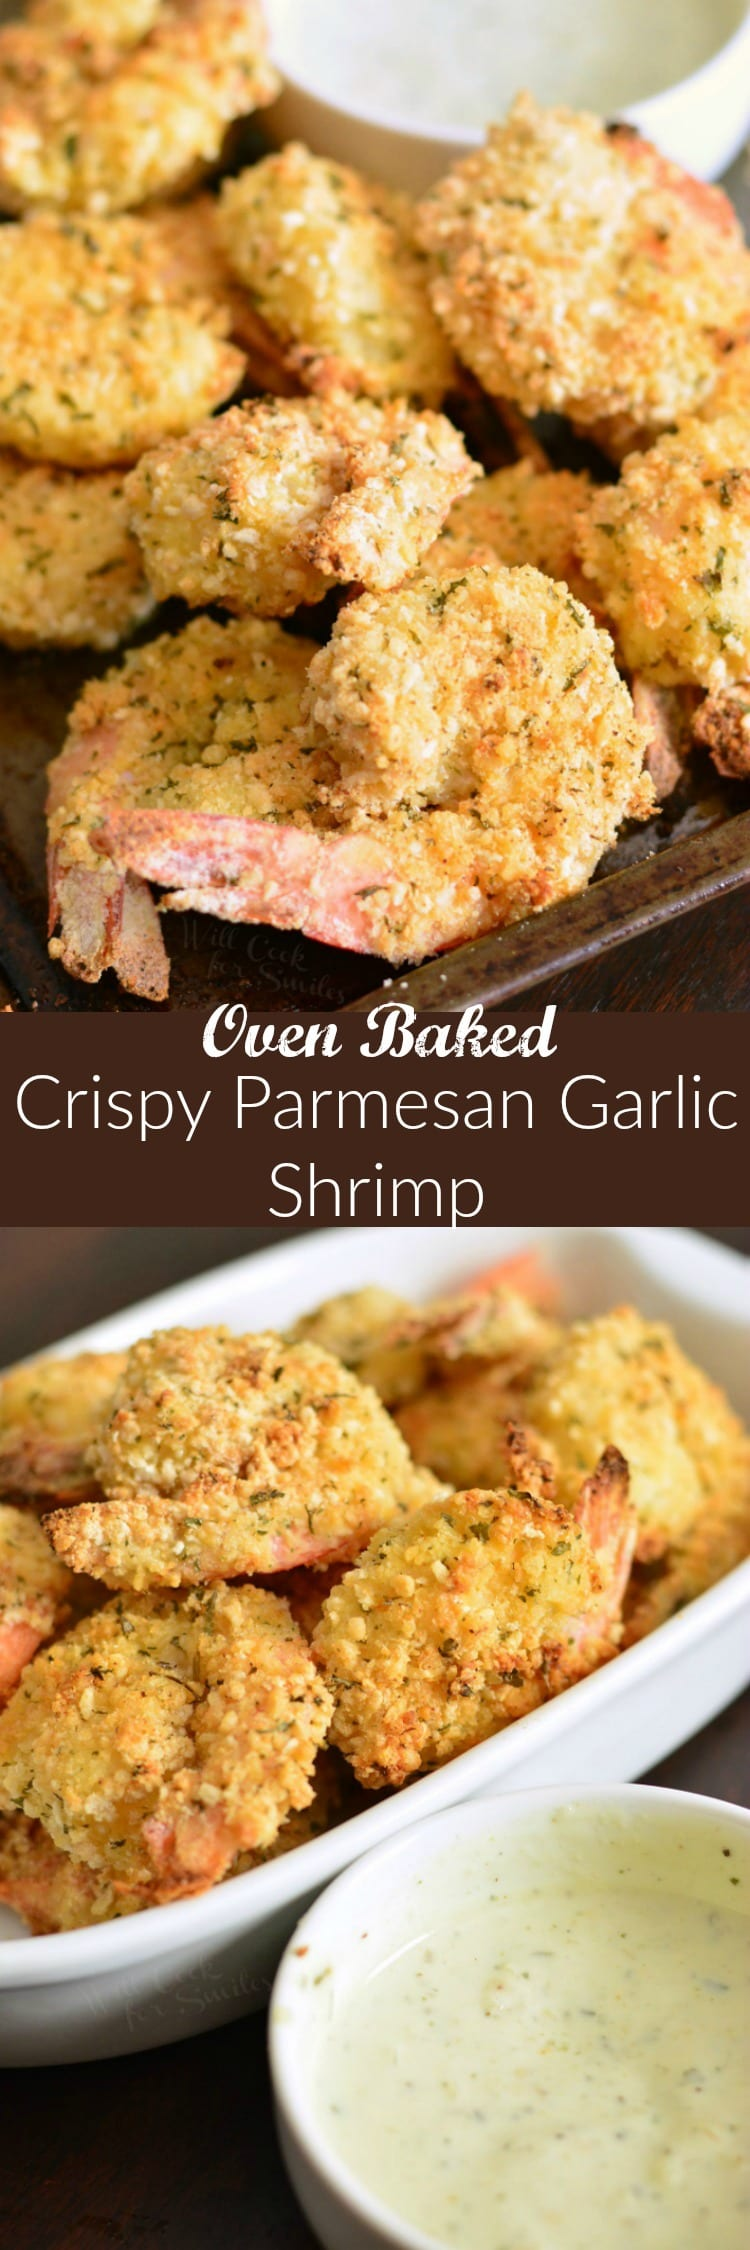 Oven Baked Crispy Parmesan Garlic Shrimp. This simple shrimp dish has a crunchy garlic Parmesan coating and is paired nicely with a garlic avocado ranch for dipping. (CAN be Gluten Free.) #shrimp #crispyshrimp #bakedshrimp #garlicshrimp #ovenbaked